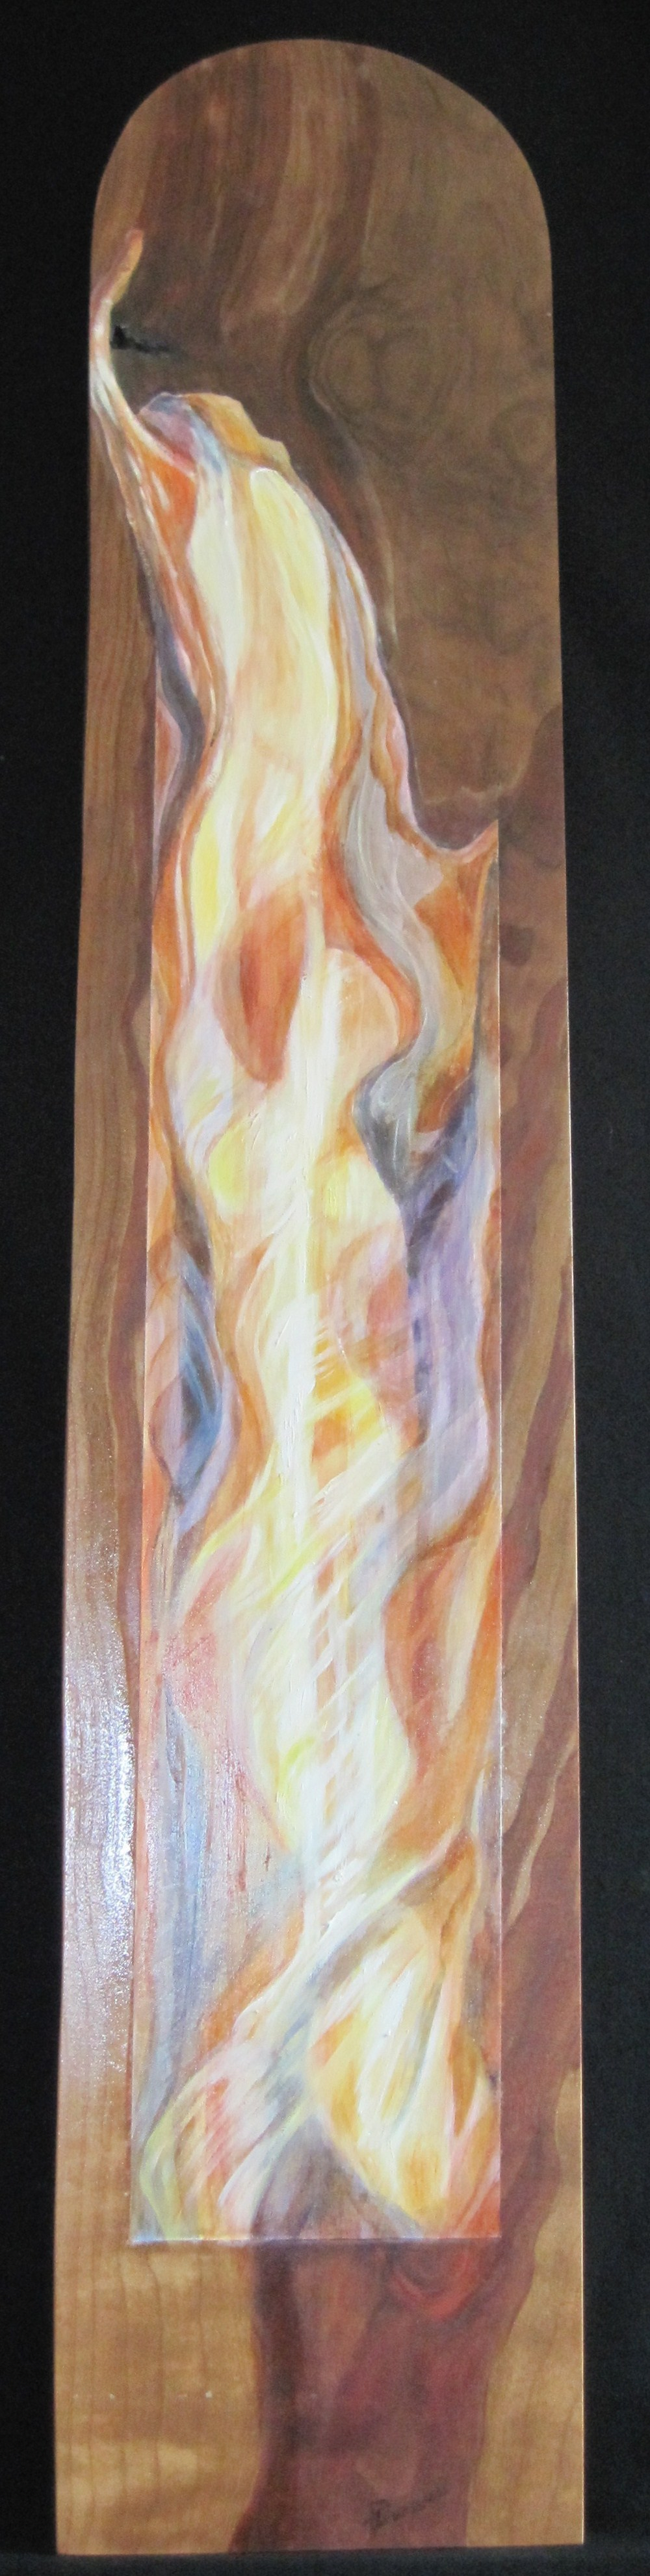 The Breath of God-7x30-sold